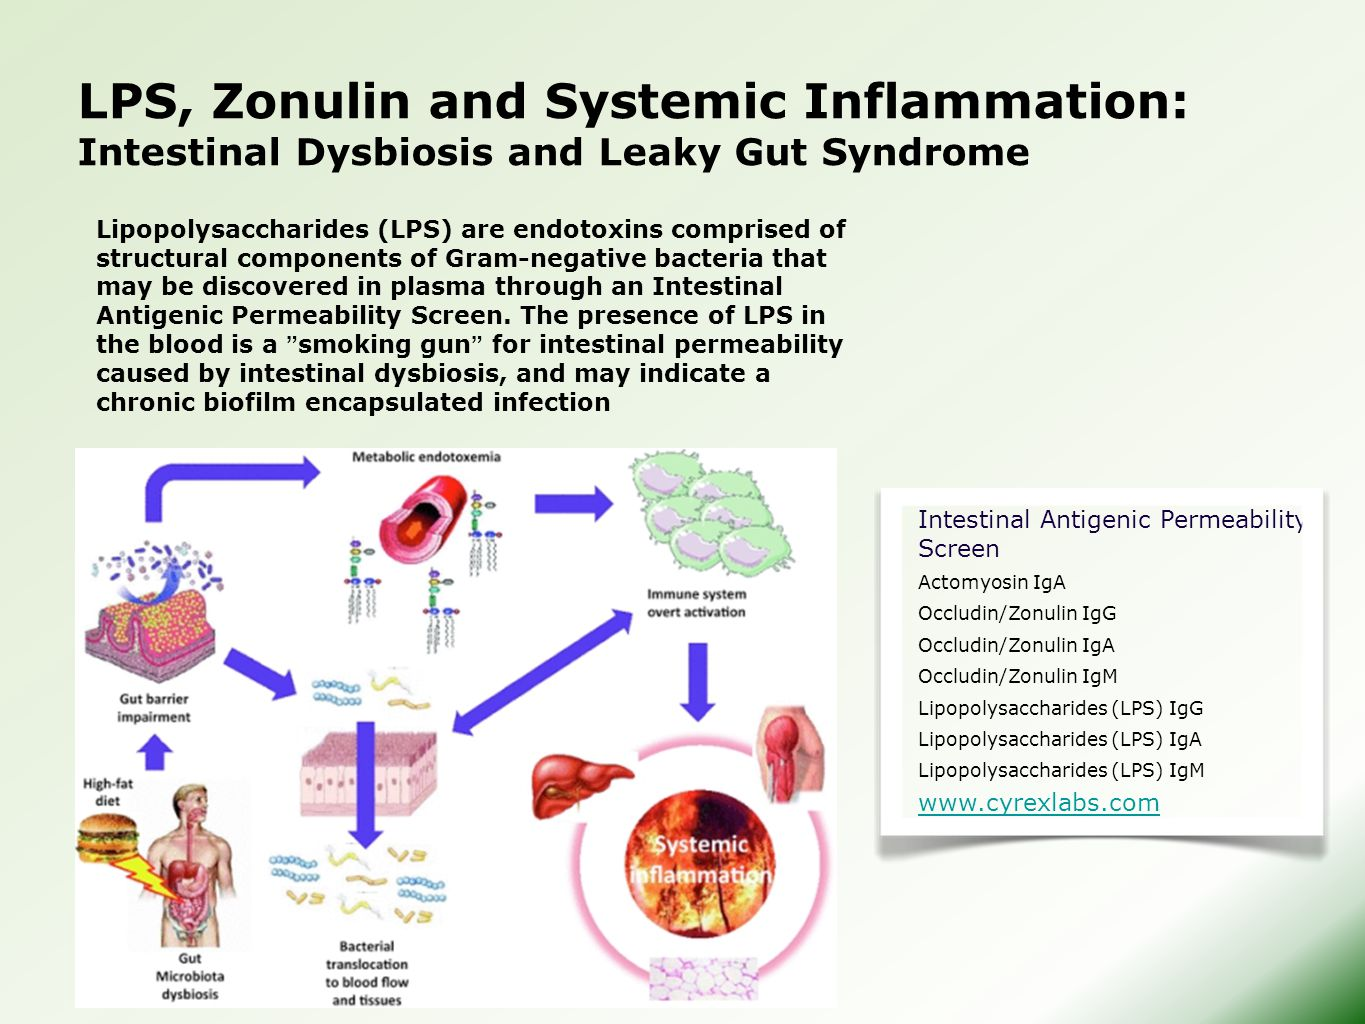 LPS, Zonulin and Systemic Inflammation: Intestinal Dysbiosis and Leaky Gut Syndrome